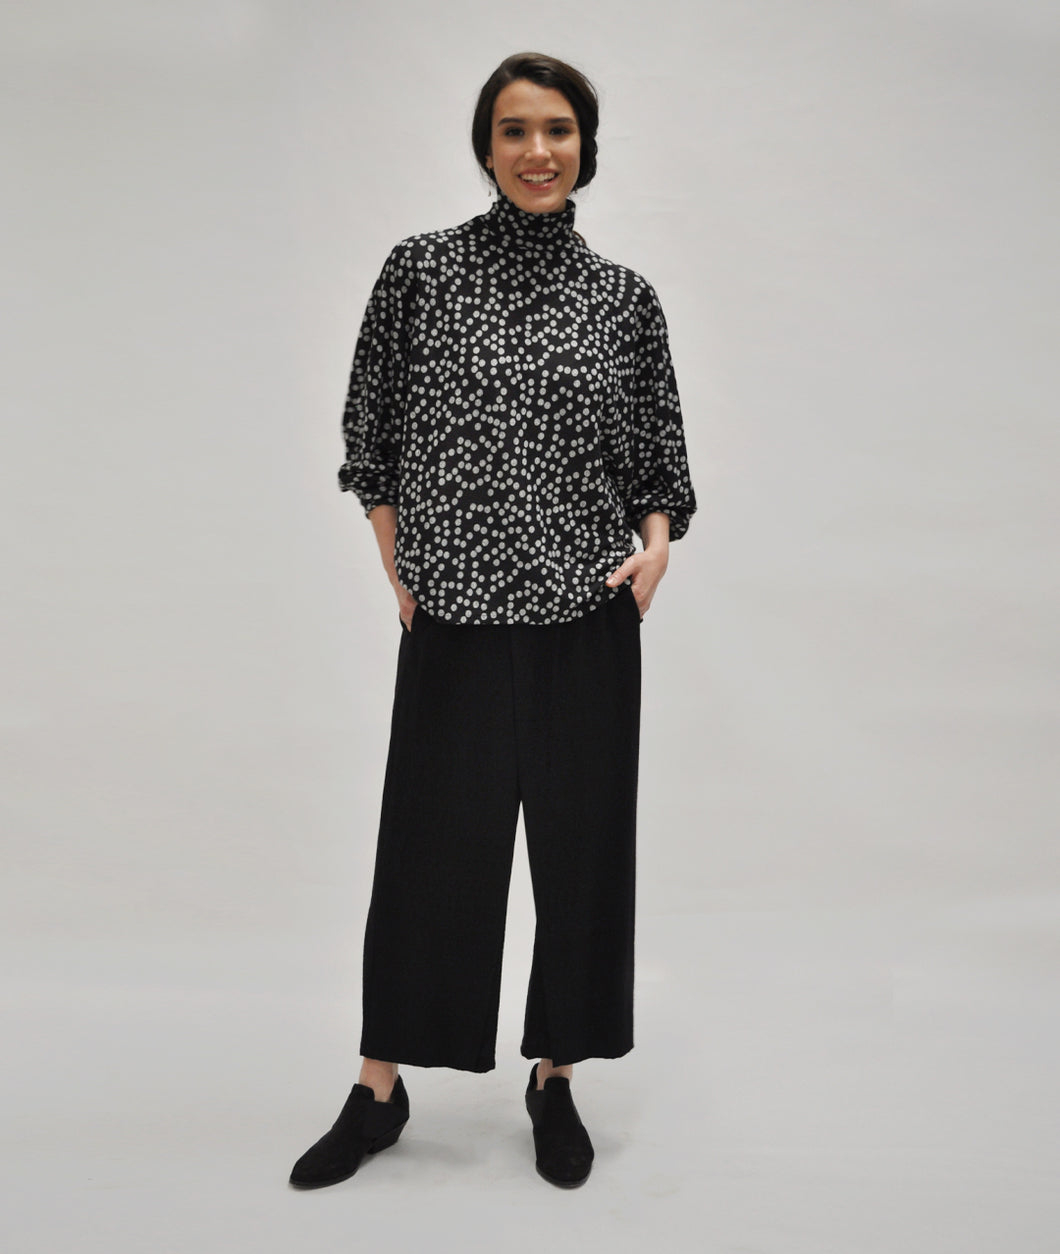 model in a wide leg black pant with a black and grey boxy polkadot top with a cowl neck